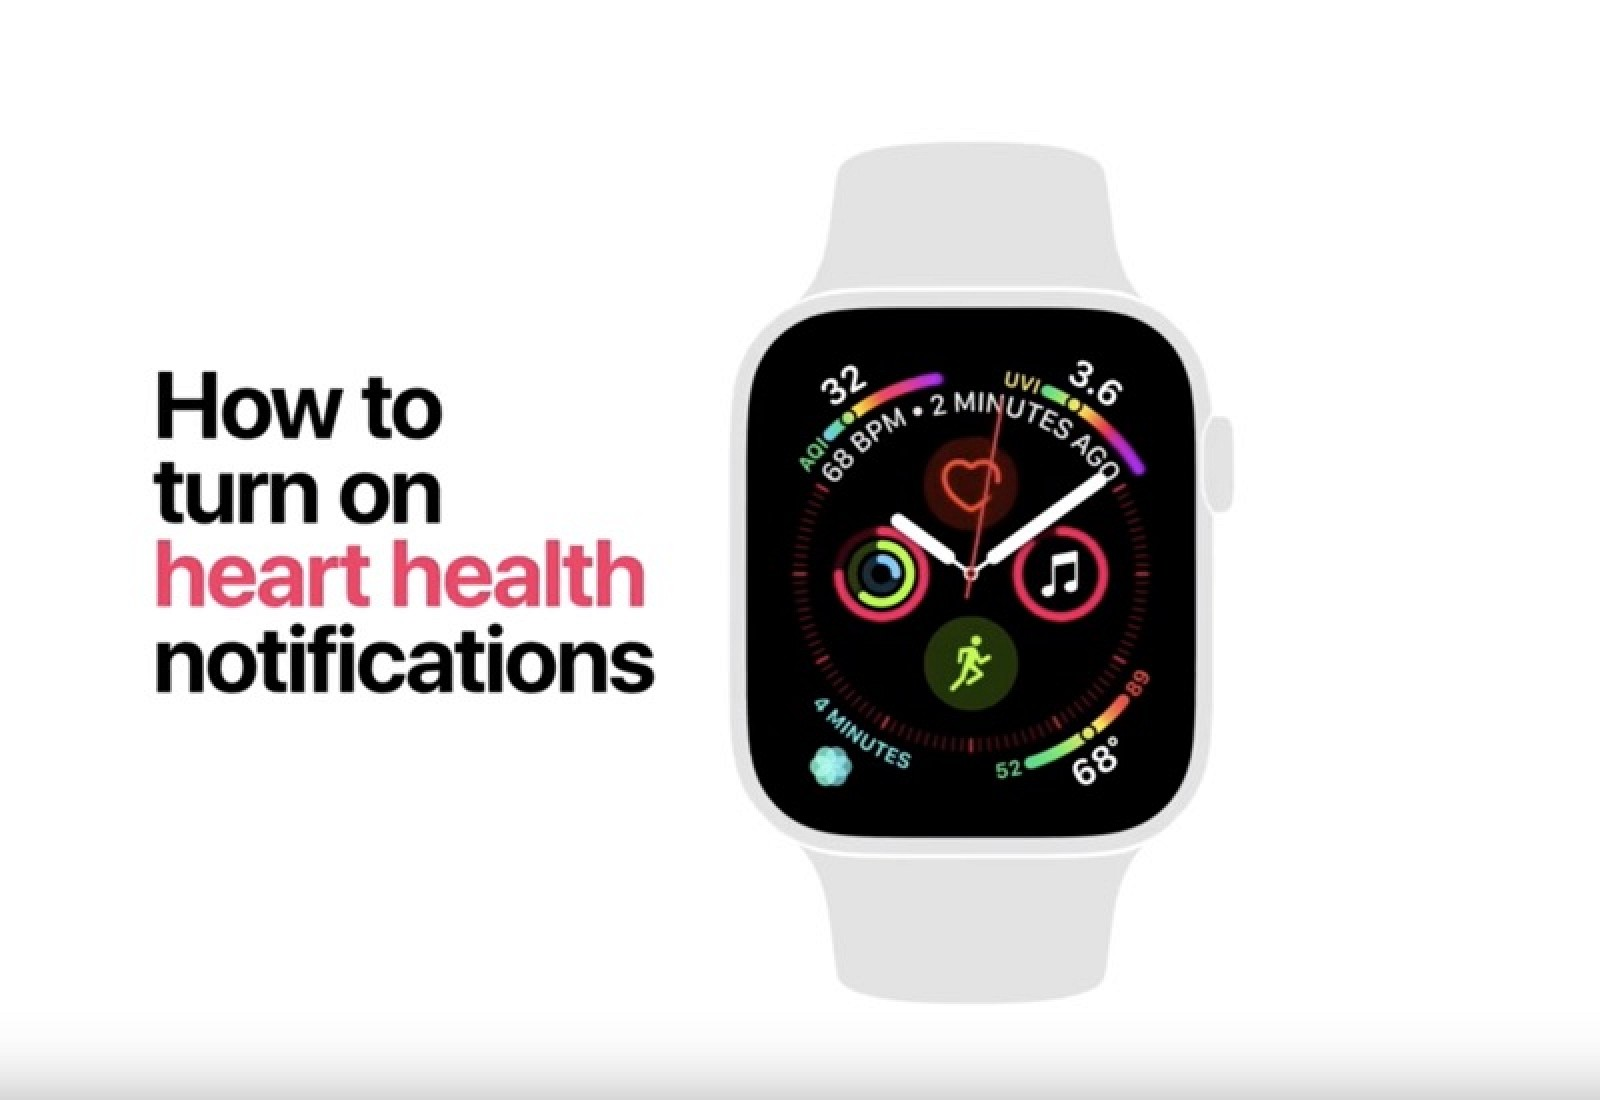 Apple Shares New Apple Watch Videos on Fall Detection and Heart